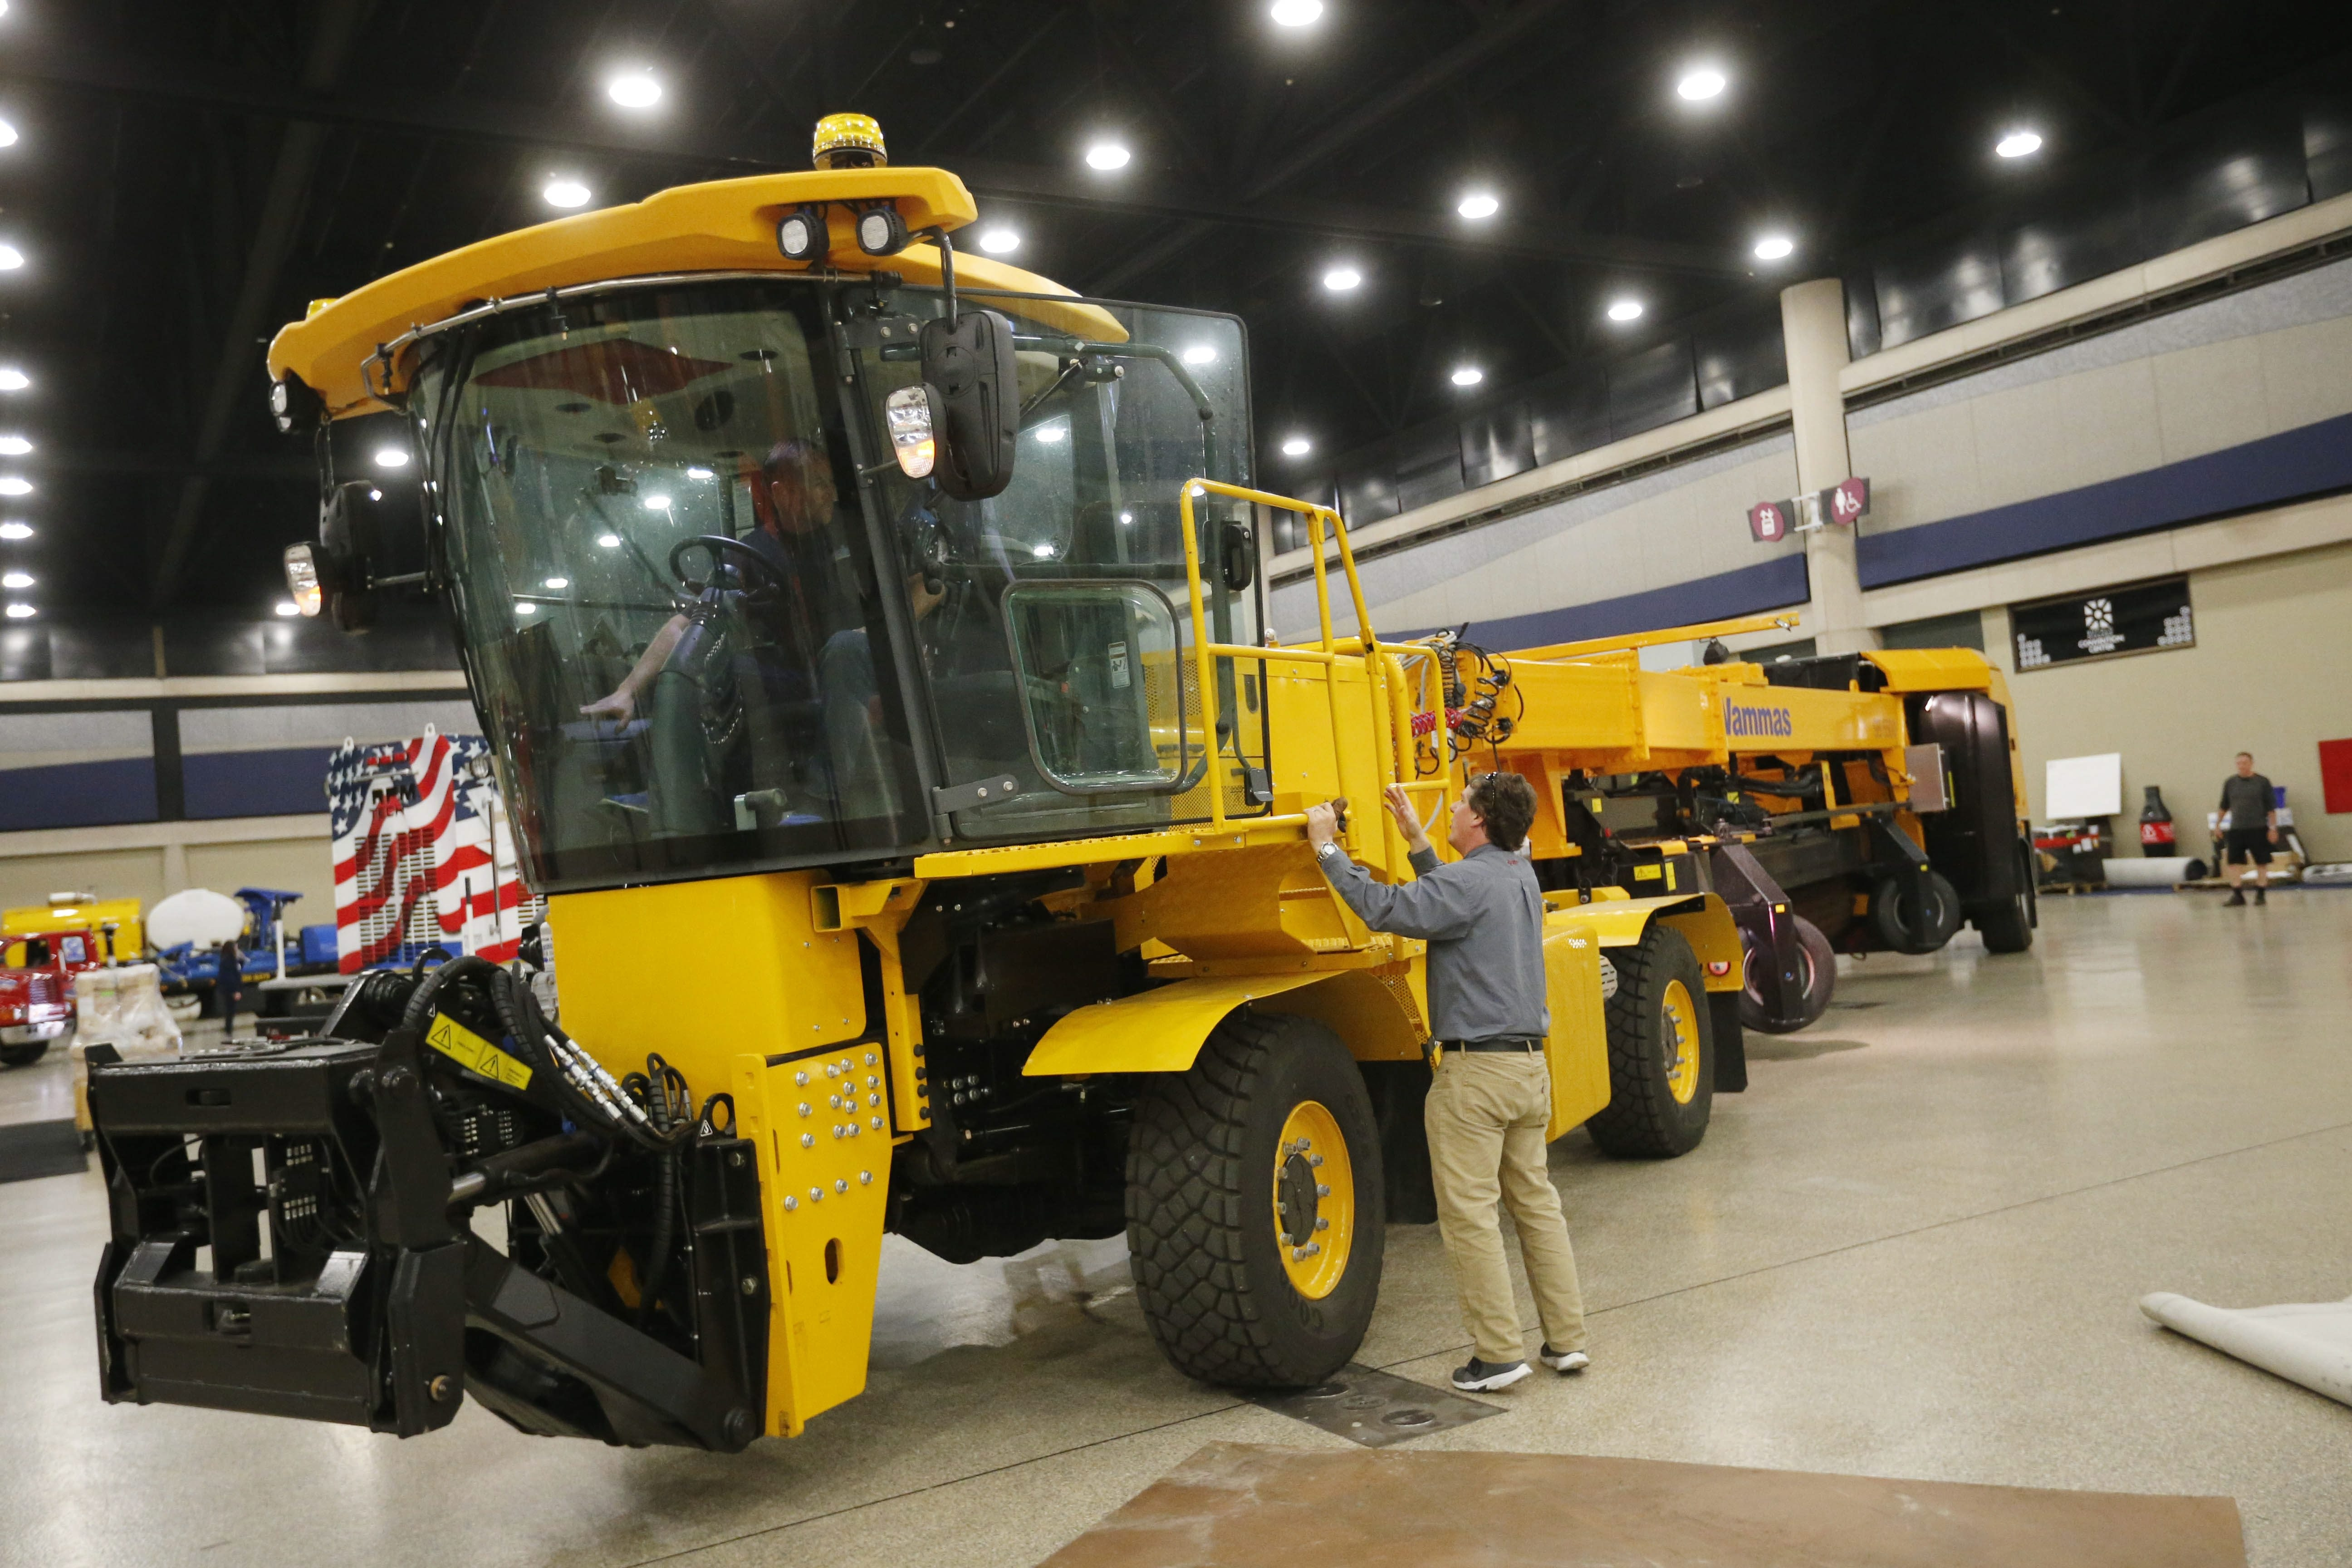 Roger Huot, right, of Fortbrand Services, gives driver Matt Roorda of Roorda Transport instructions as he drives a giant sweeper into place during the setup for the International Aviation Snow Symposium at the Buffalo Niagara Convention Center on Friday.